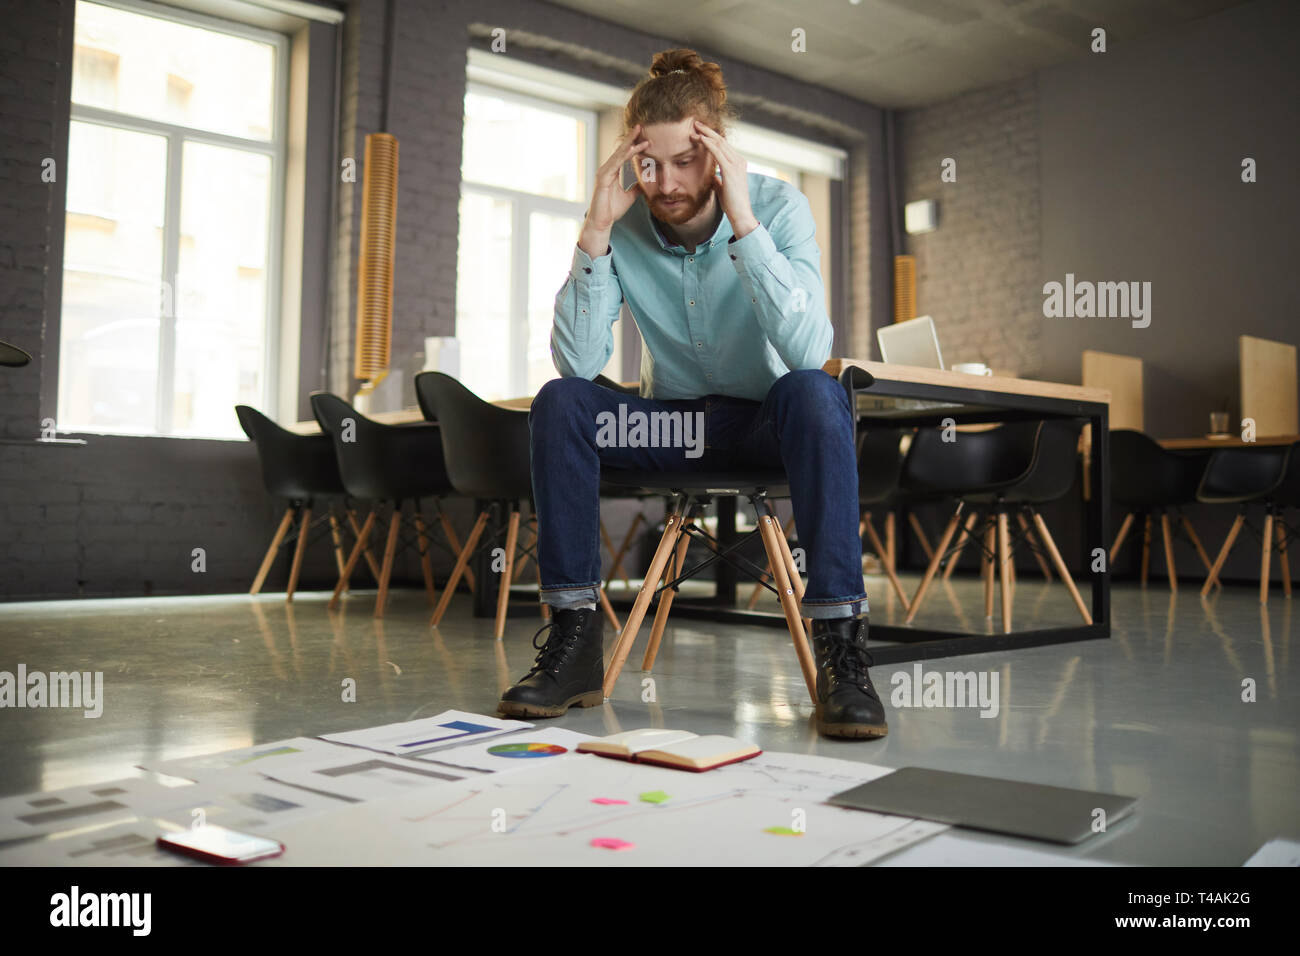 Puzzled Businessman Looking at Documents - Stock Image